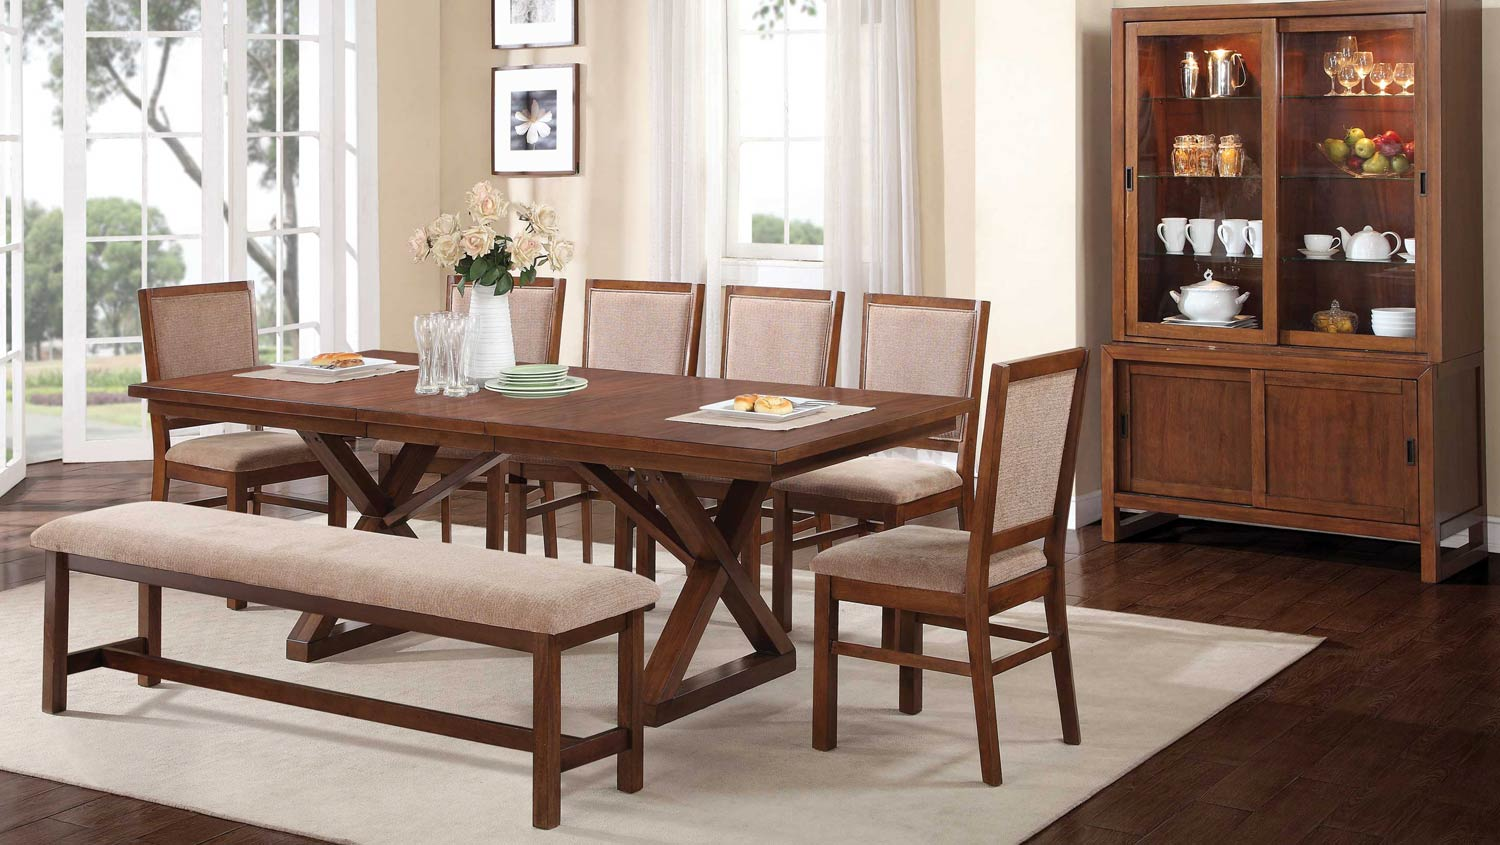 Coaster Camila Dining Set - Walnut